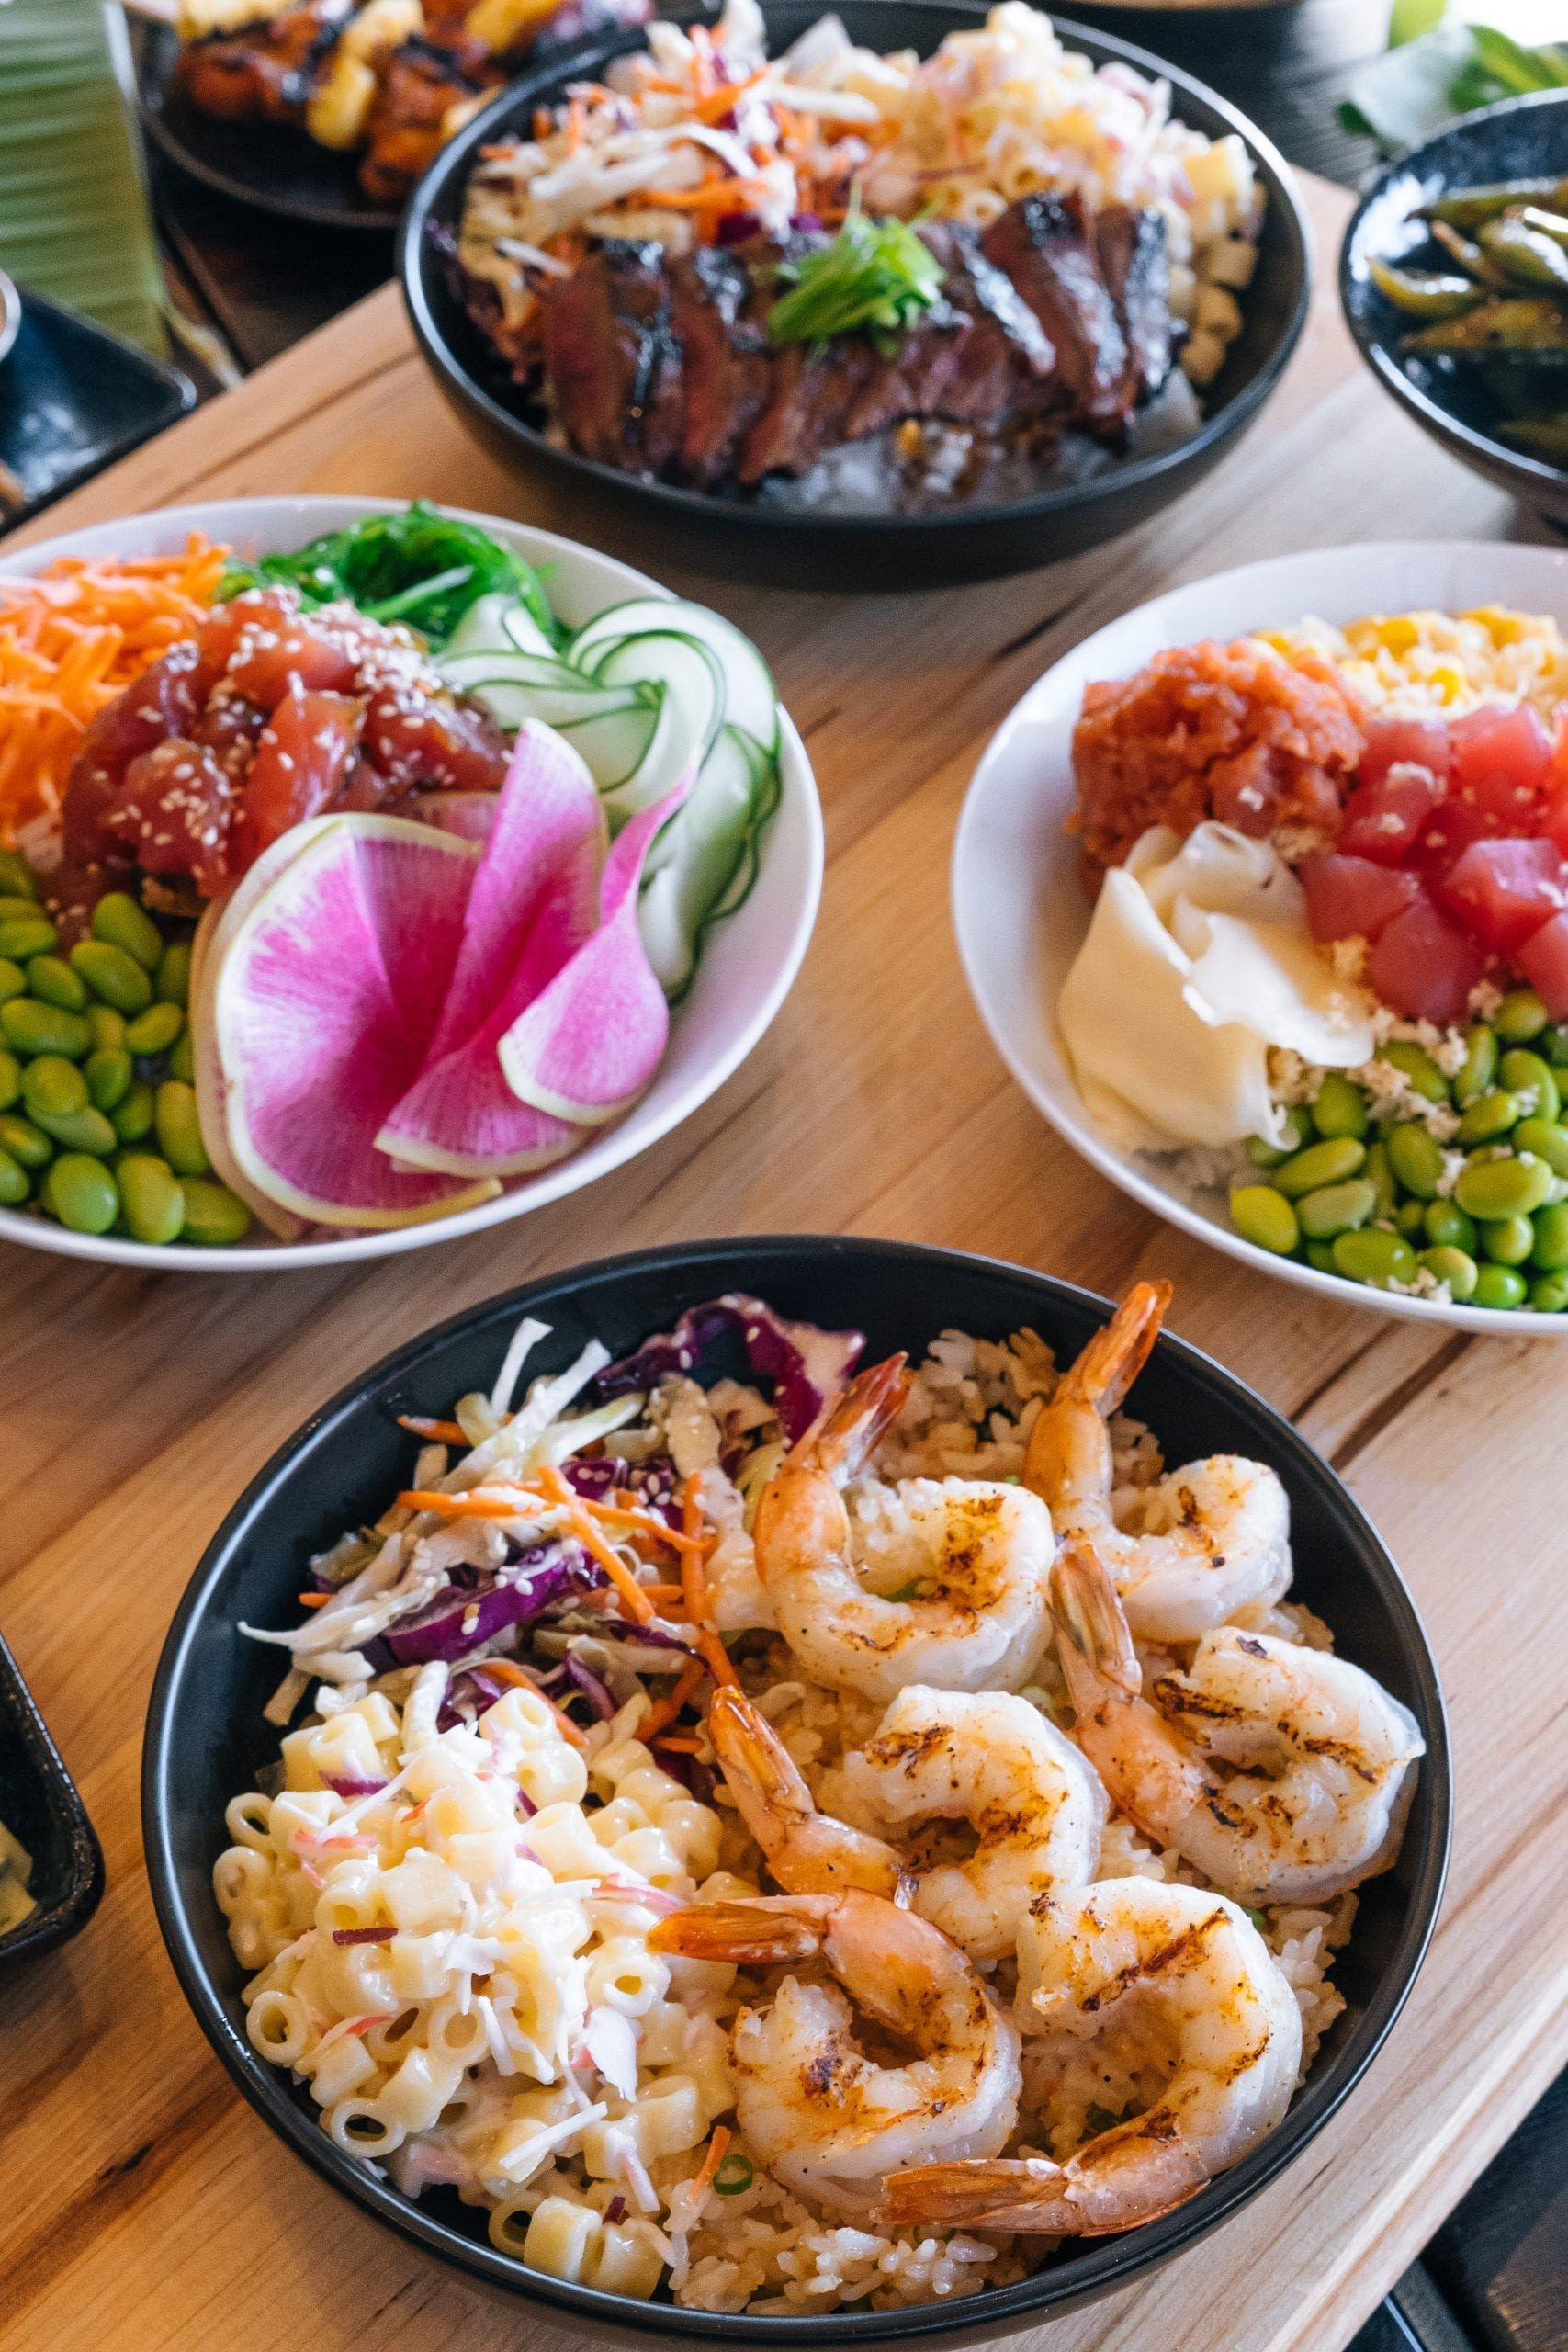 Makai Food and Poke Spread out on table - Shrimp bowl featured